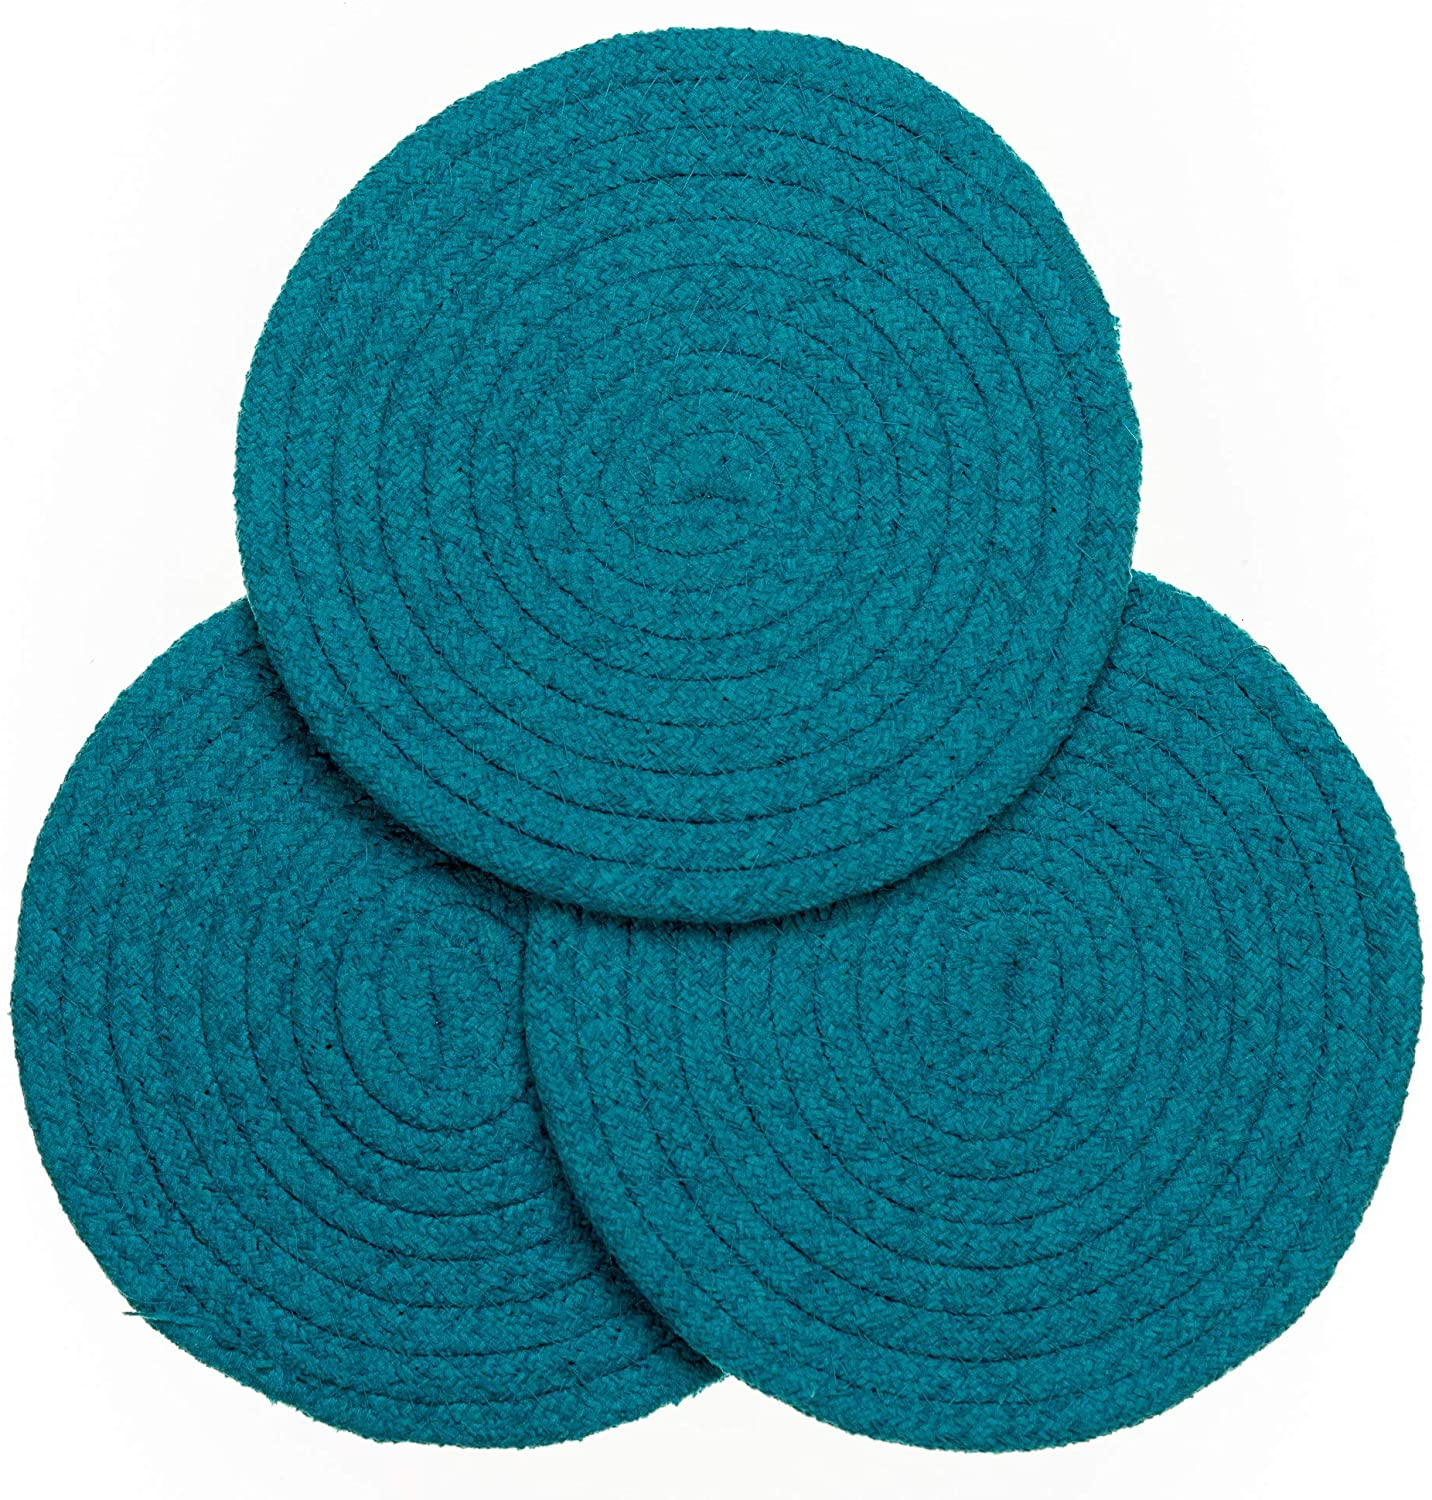 Kitchen Discovery 8 Chenille Trivets - Set of 3 (Teal)